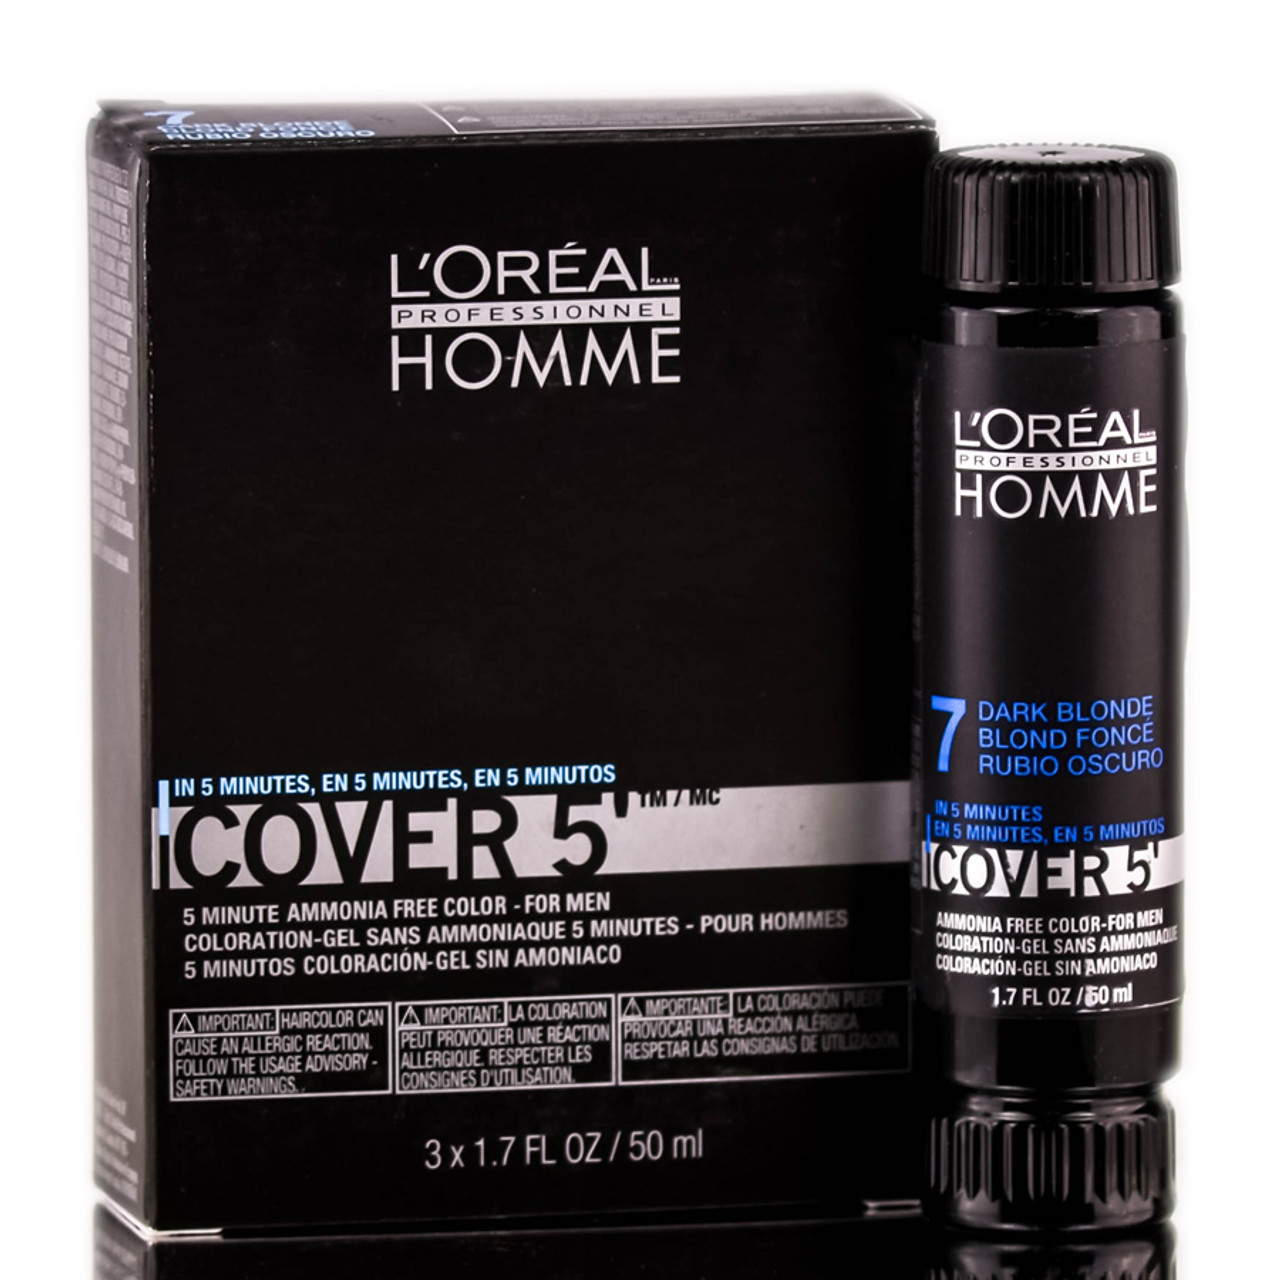 loreal homme cover 5 ammonia free 5 minute color for men - Keune Color Swatch Book